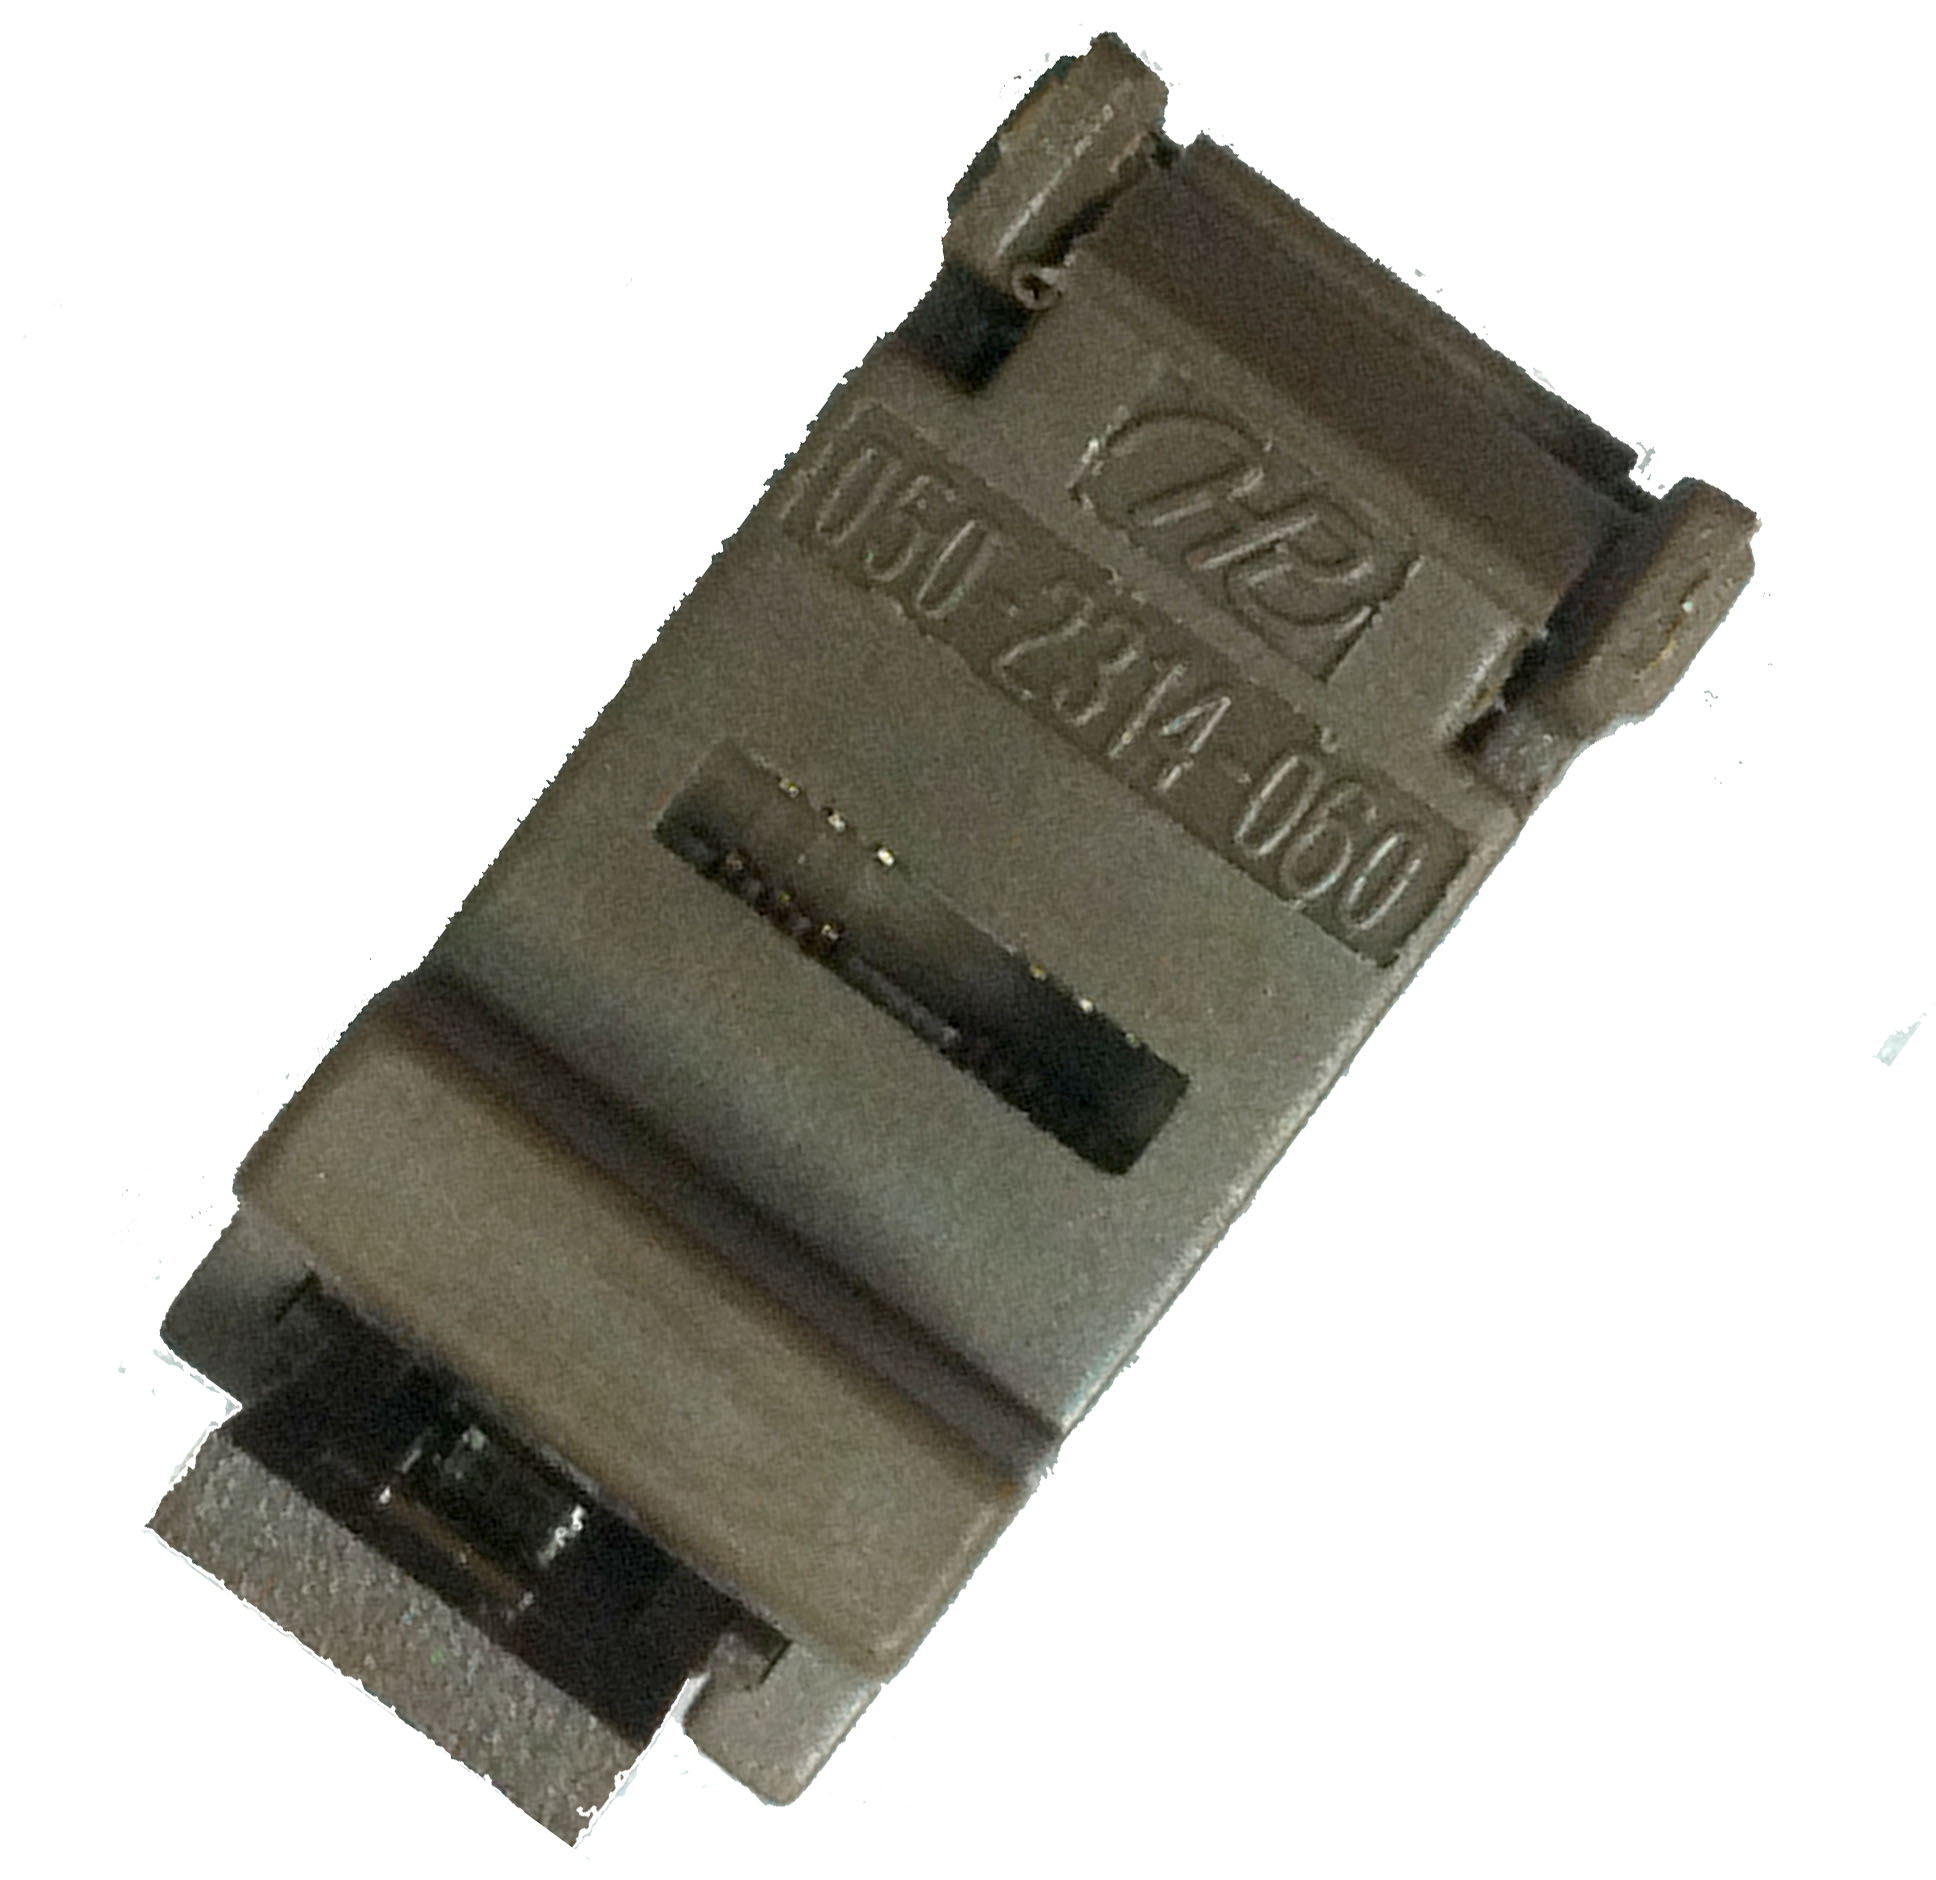 Cheap Sot23 3 Find Deals On Line At Alibabacom Diy Sot 23 Adapter Get Quotations 6 14 Aging Bridge Test 13 Ic Socket 050